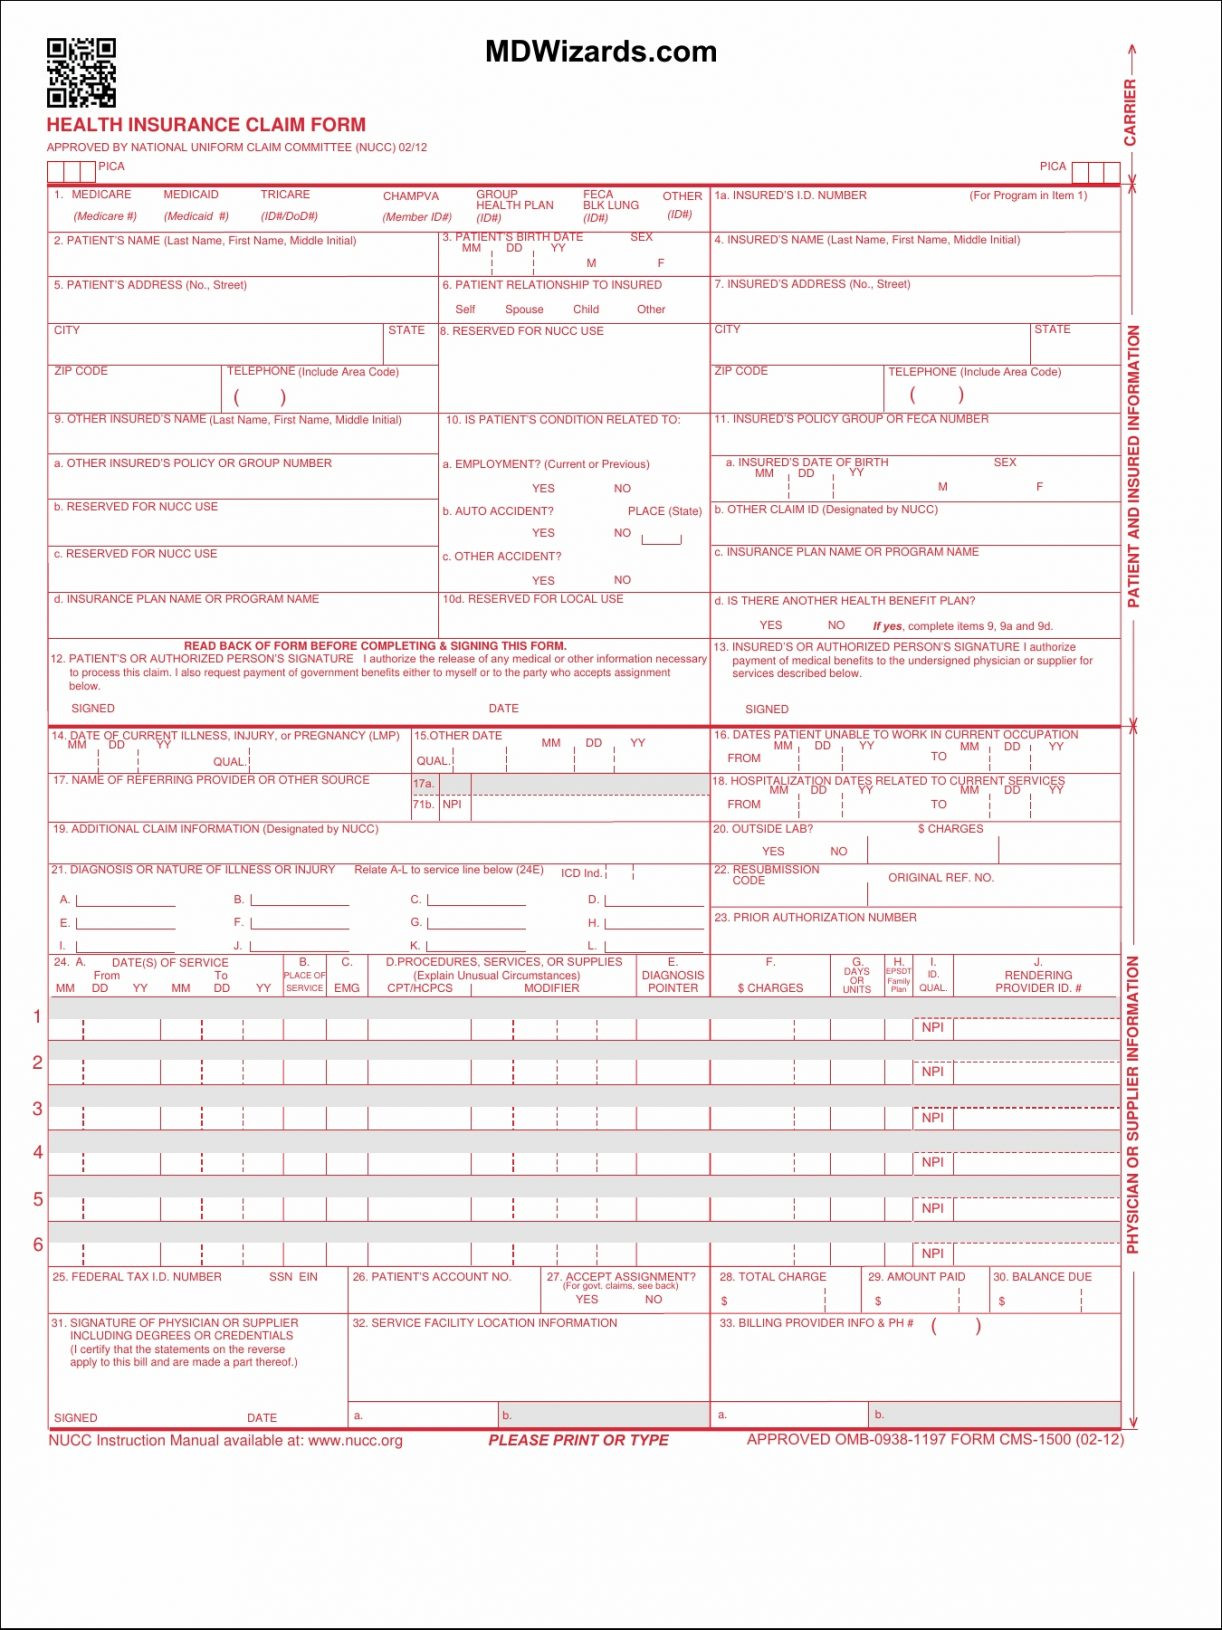 Hcfa 1500 Claim Form Fresh Hcfa Claim Form Cms Version 02 12 2 Essential Also Enlarge Cms Forms